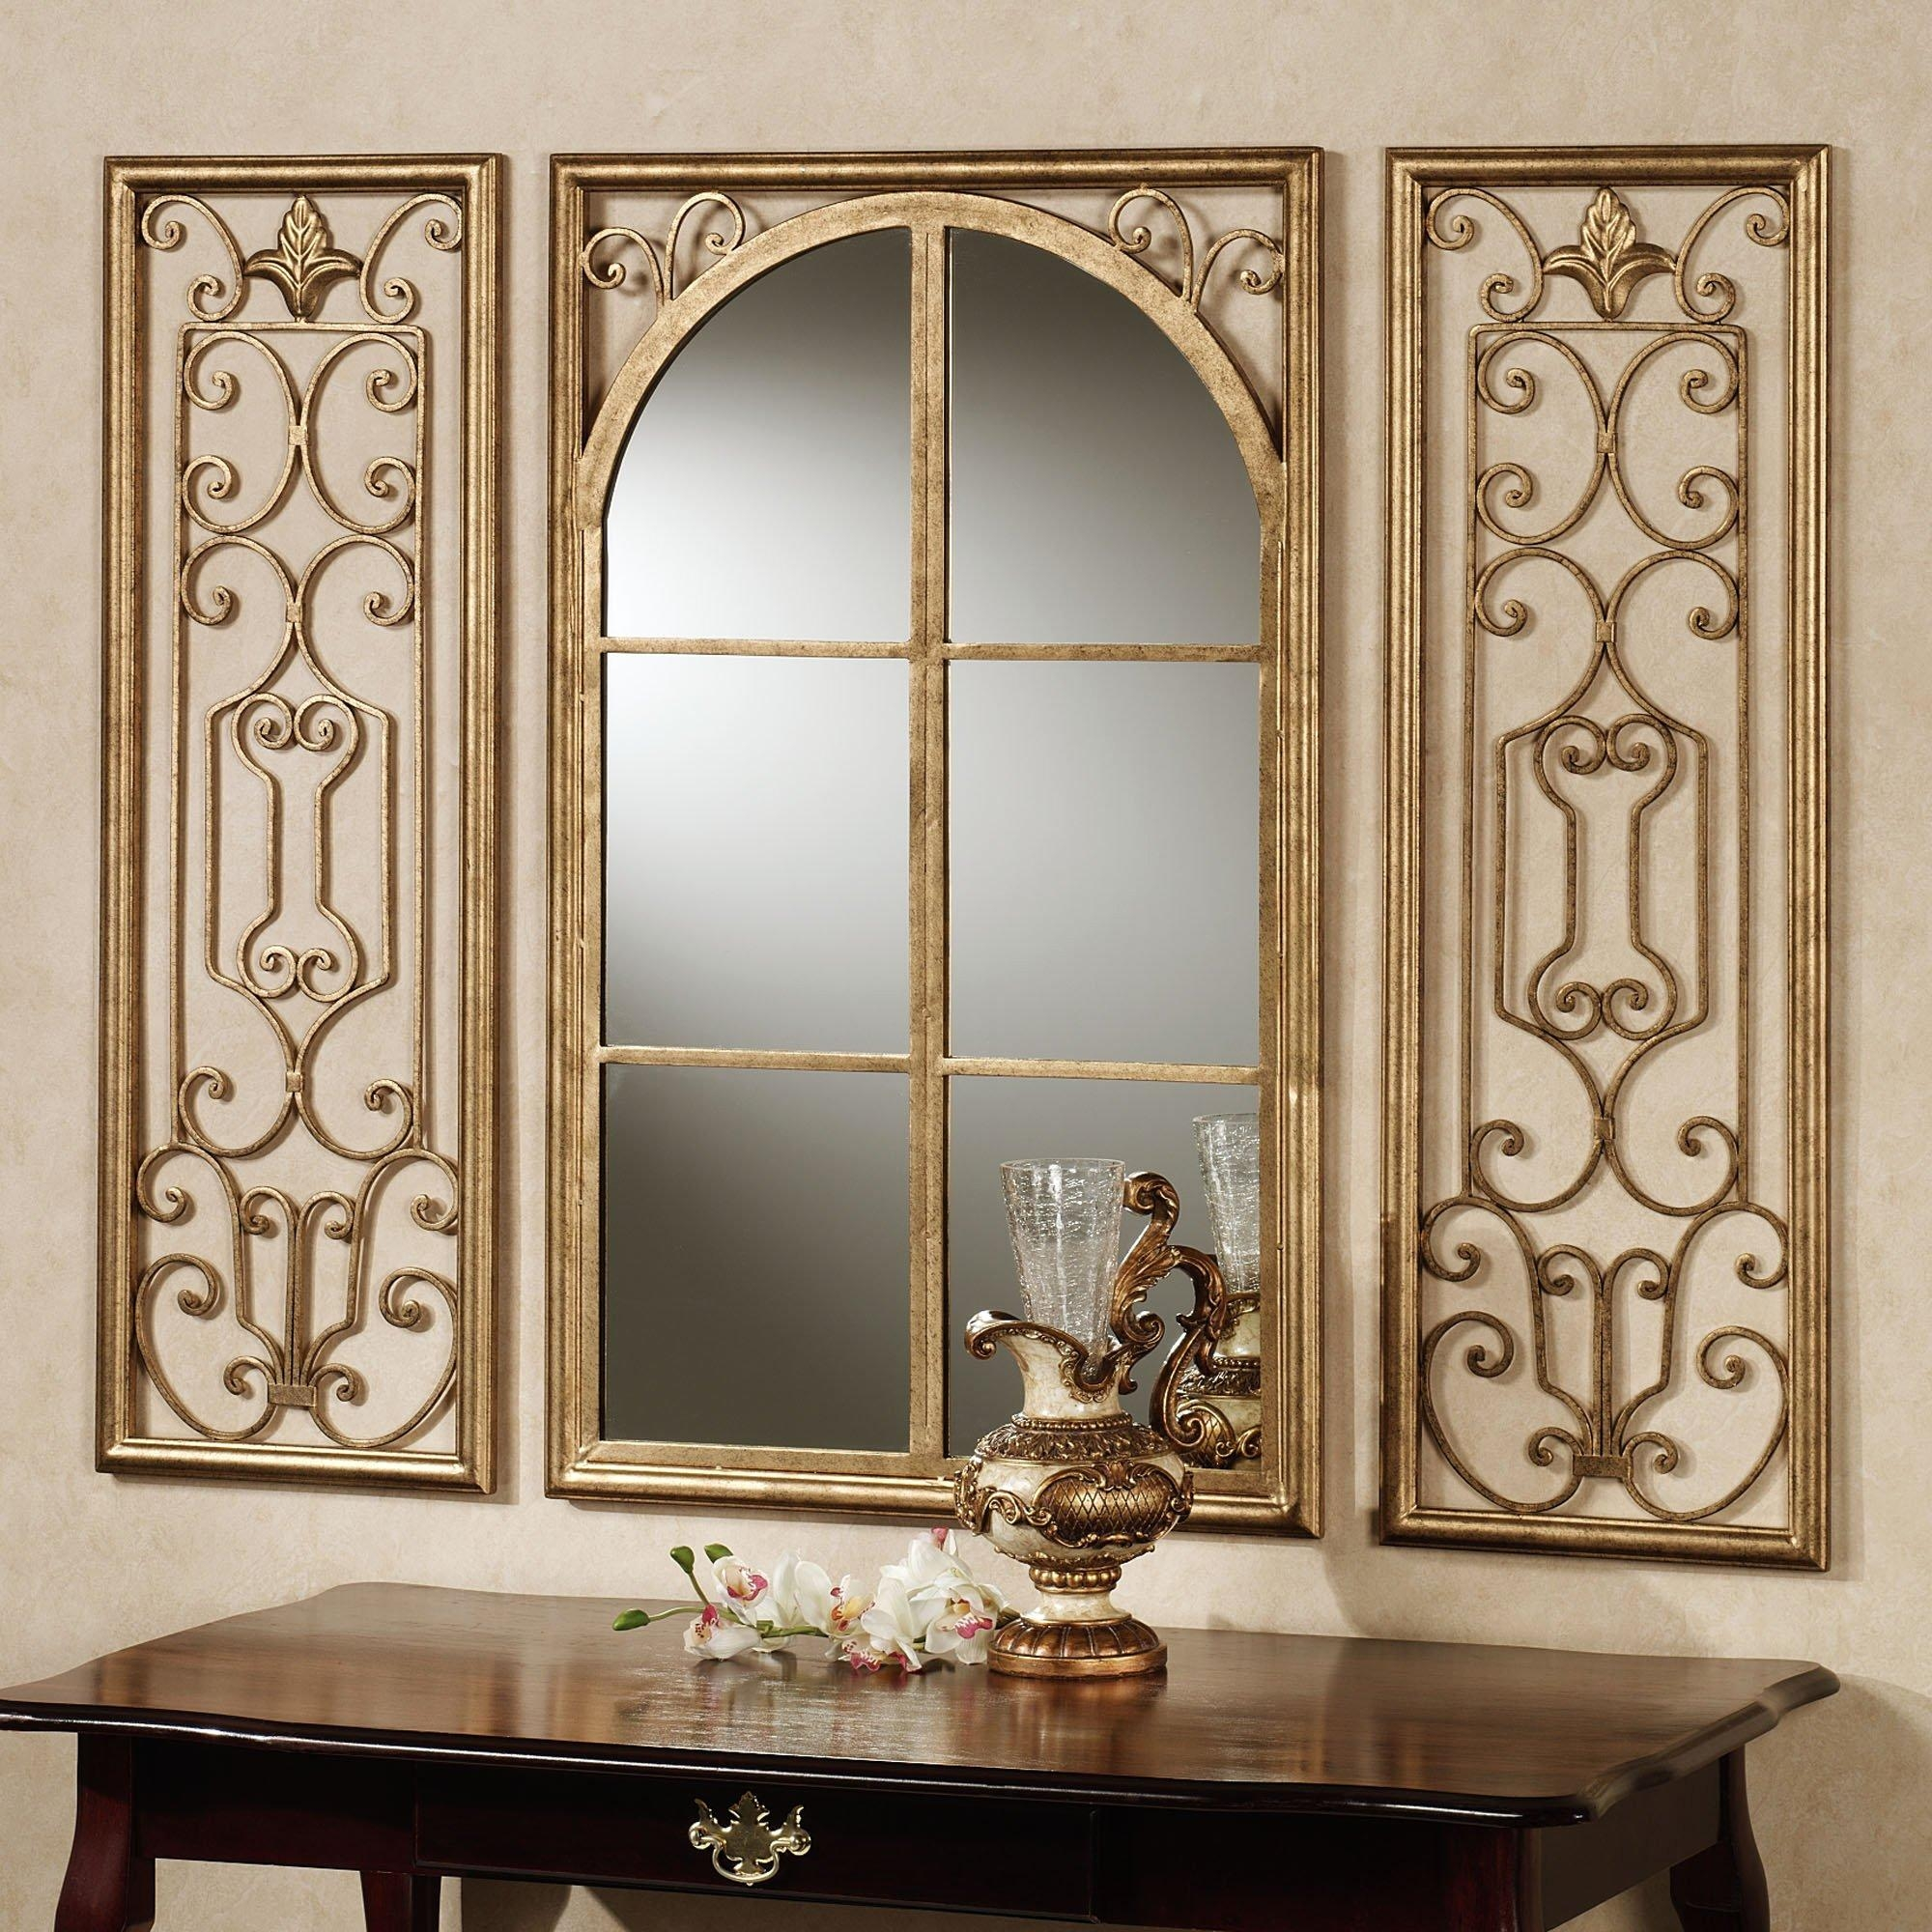 20 inspirations fancy wall mirrors for sale mirror ideas for House decor sale